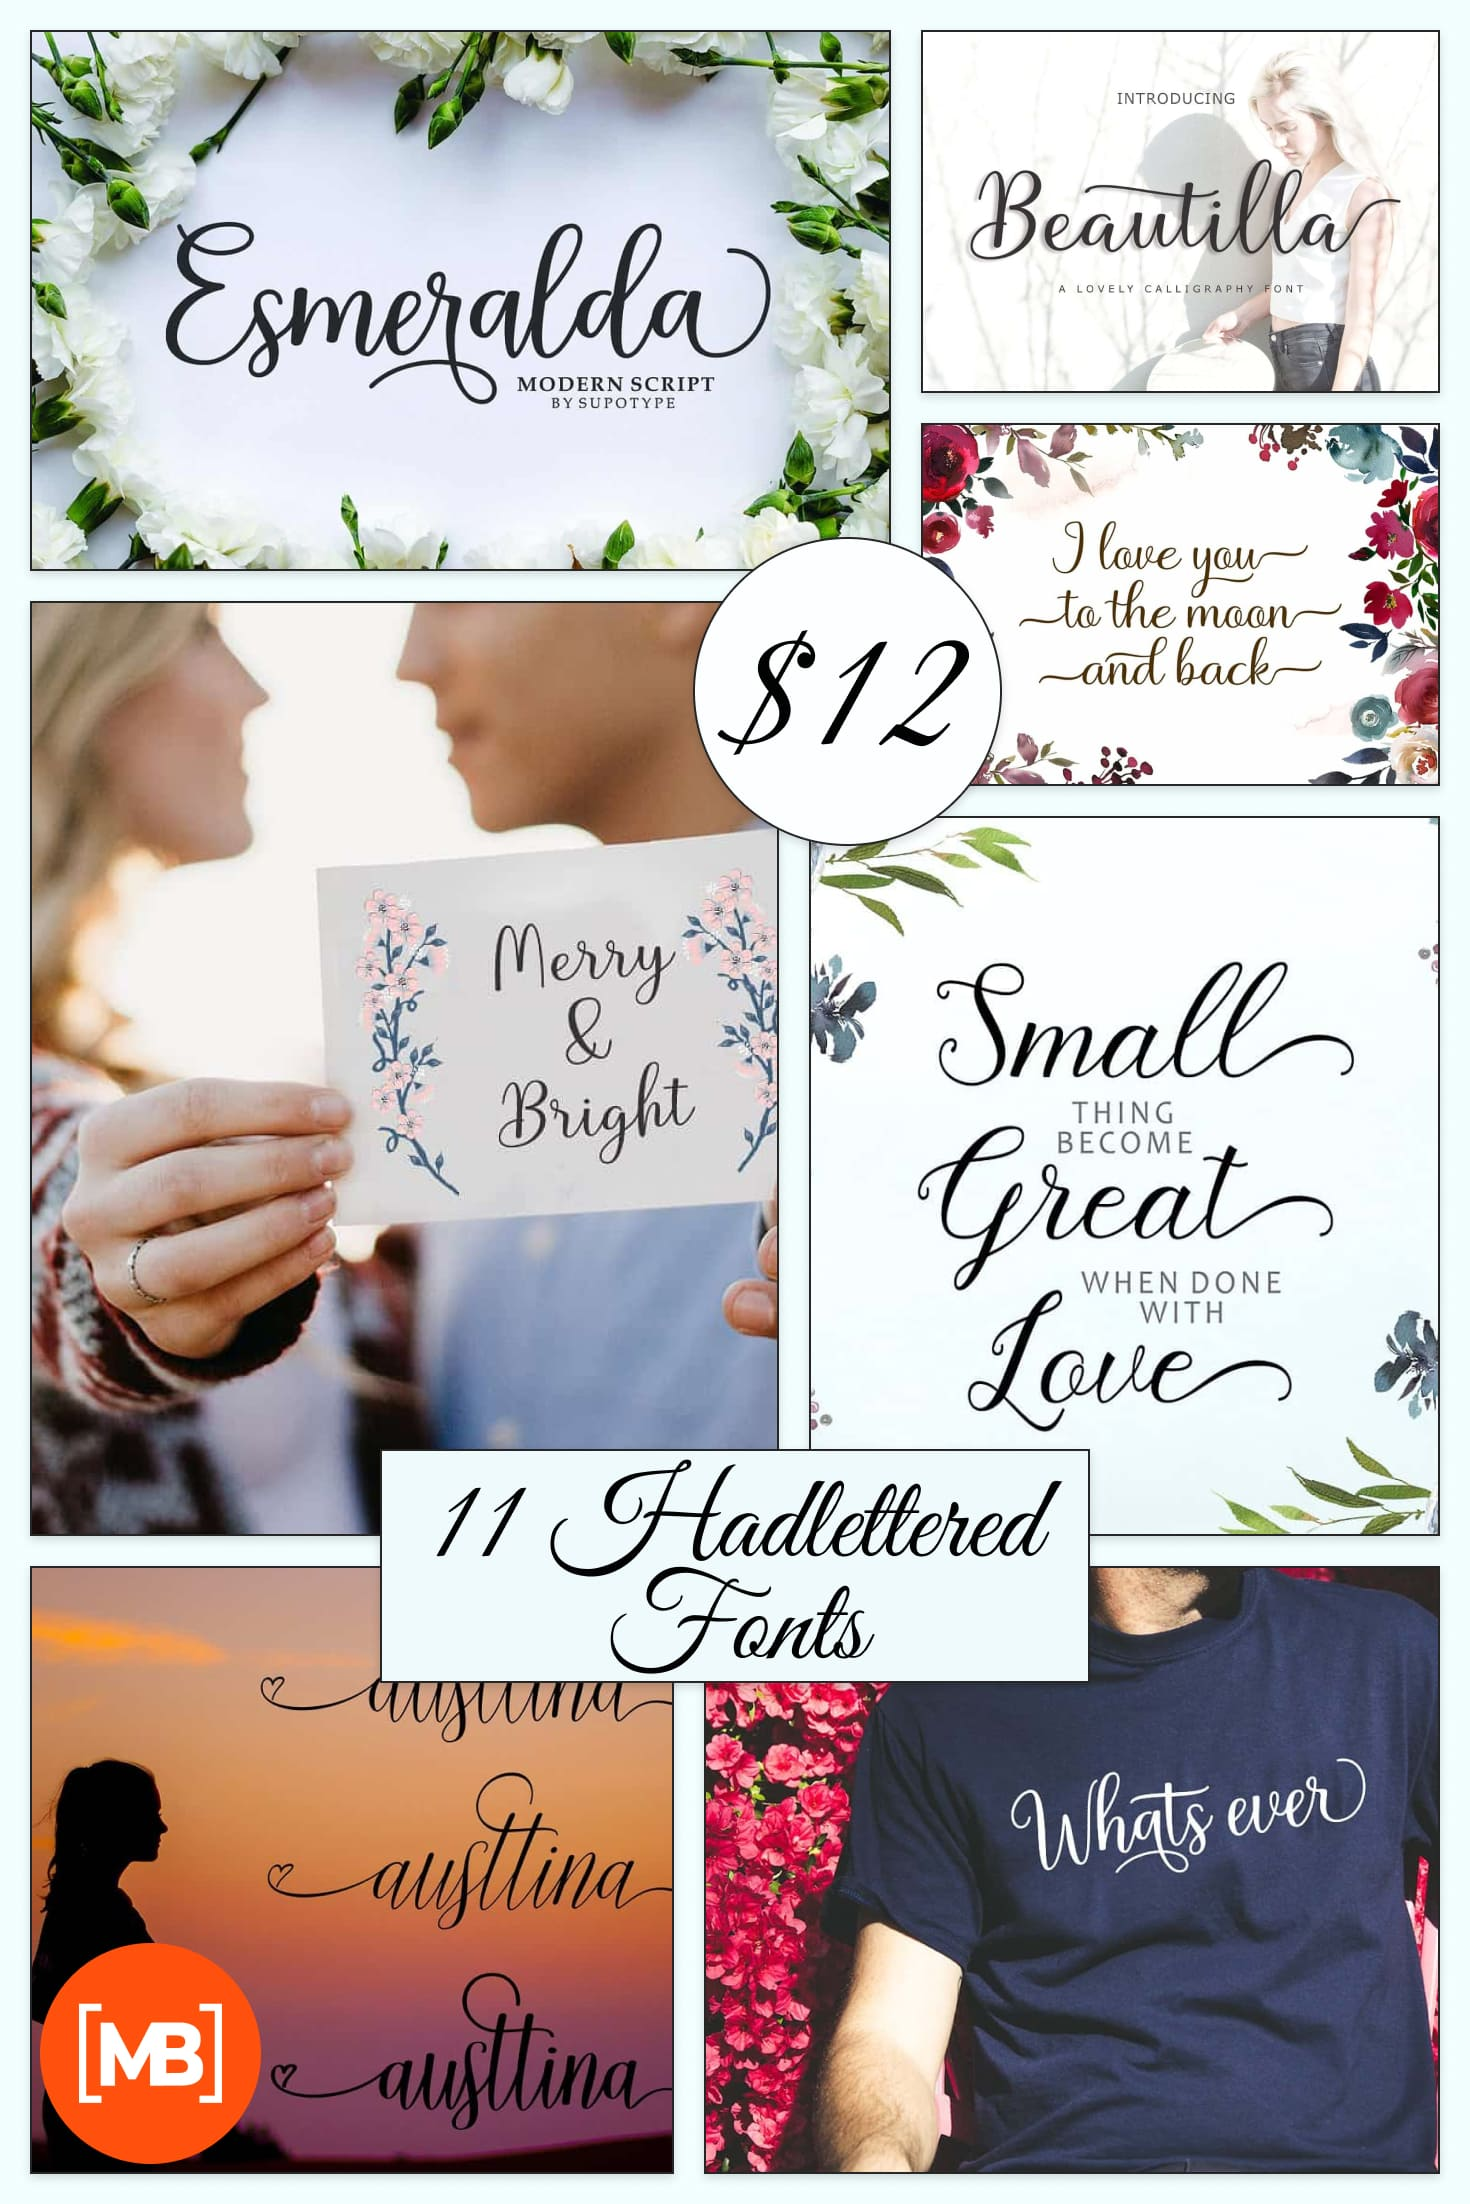 Pretty Fonts - 11 Hadlettered Fonts - 6 Typefaces. Collage Image.